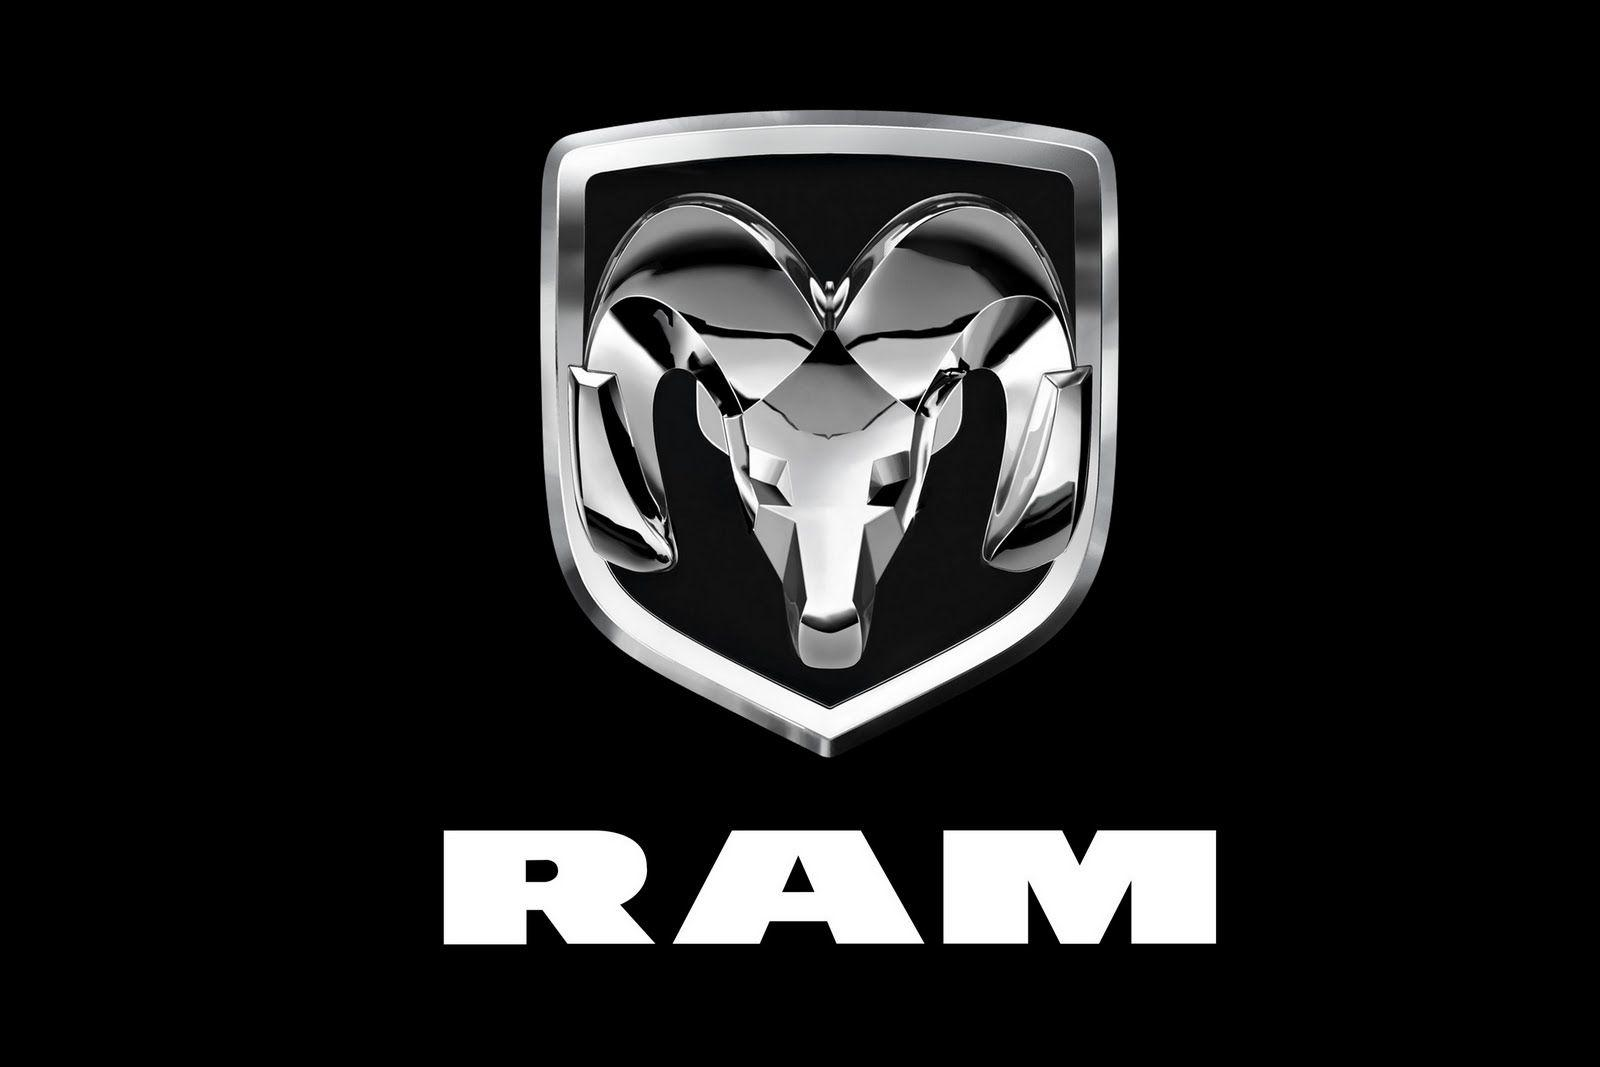 Dodge Ram Logo Wallpaper HD - WallpaperSafari